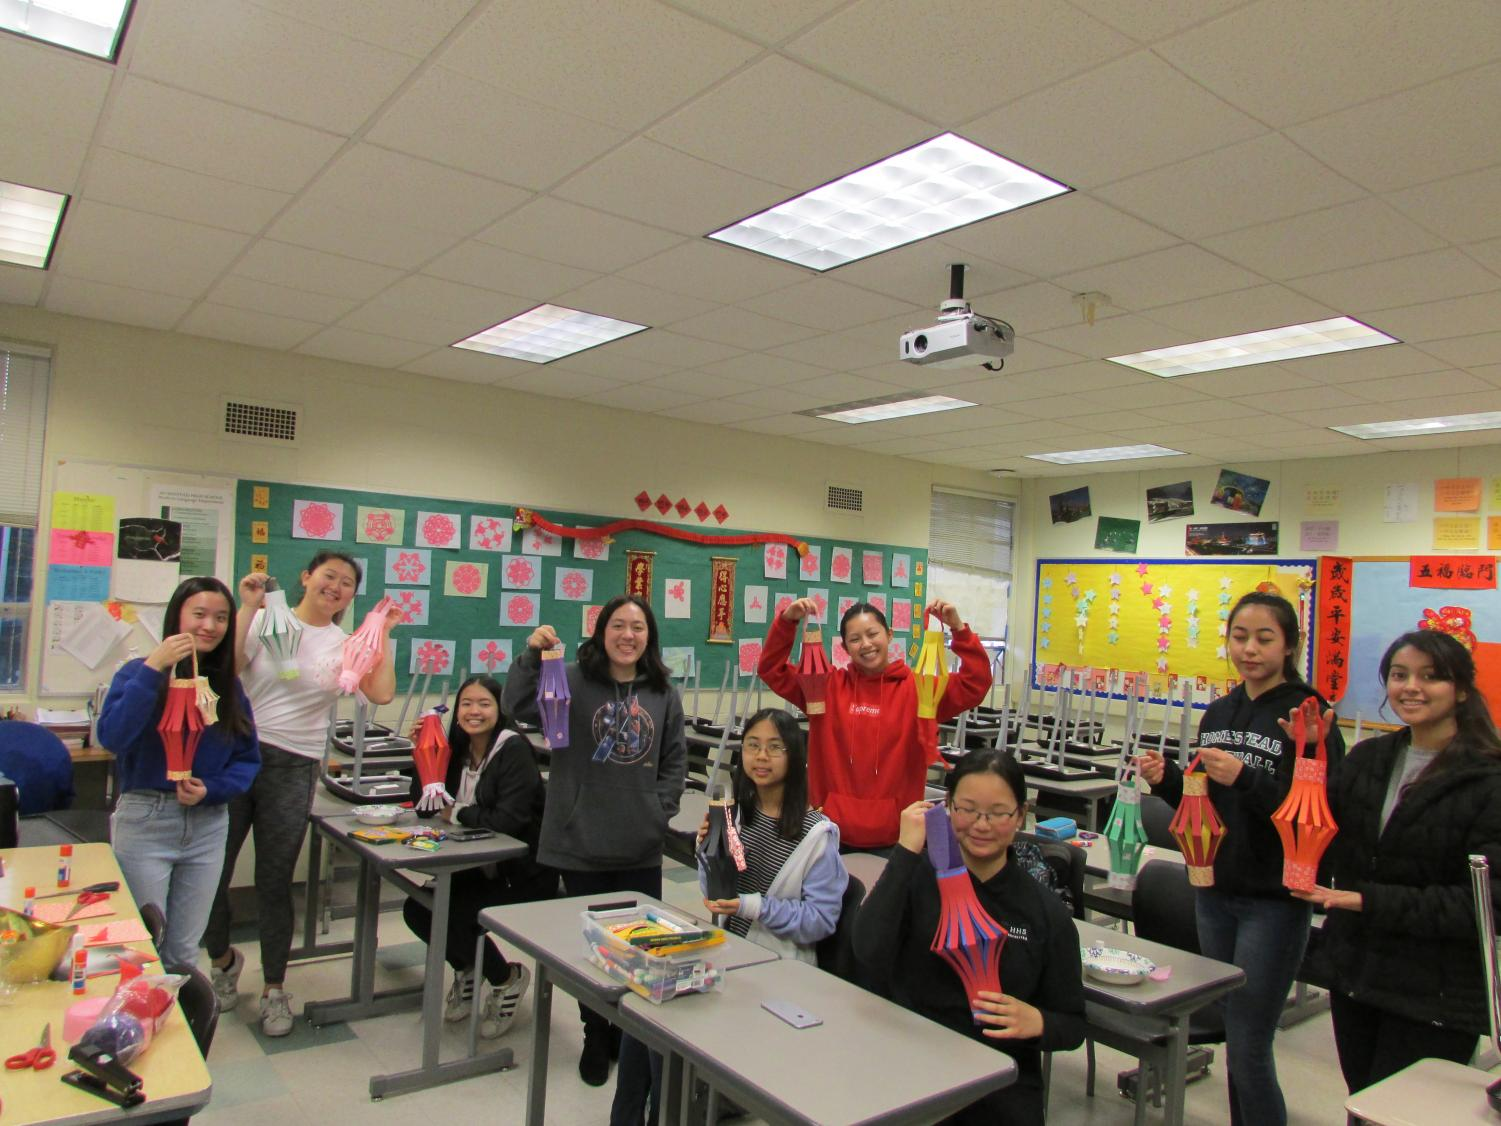 Chinese New Year serves as an occasion on which friends and family can come together. Pictured from left: Joyce Kuo (12), Katherine Dong (12), Alyssa Liang (12), Megan Ikeya (12), Julia Wang (10), Isabelle Law (12), Emily Yao (11), Lily Collins (9), Angelica Ochoa (10).  Photo by Dexter Tatsukawa.